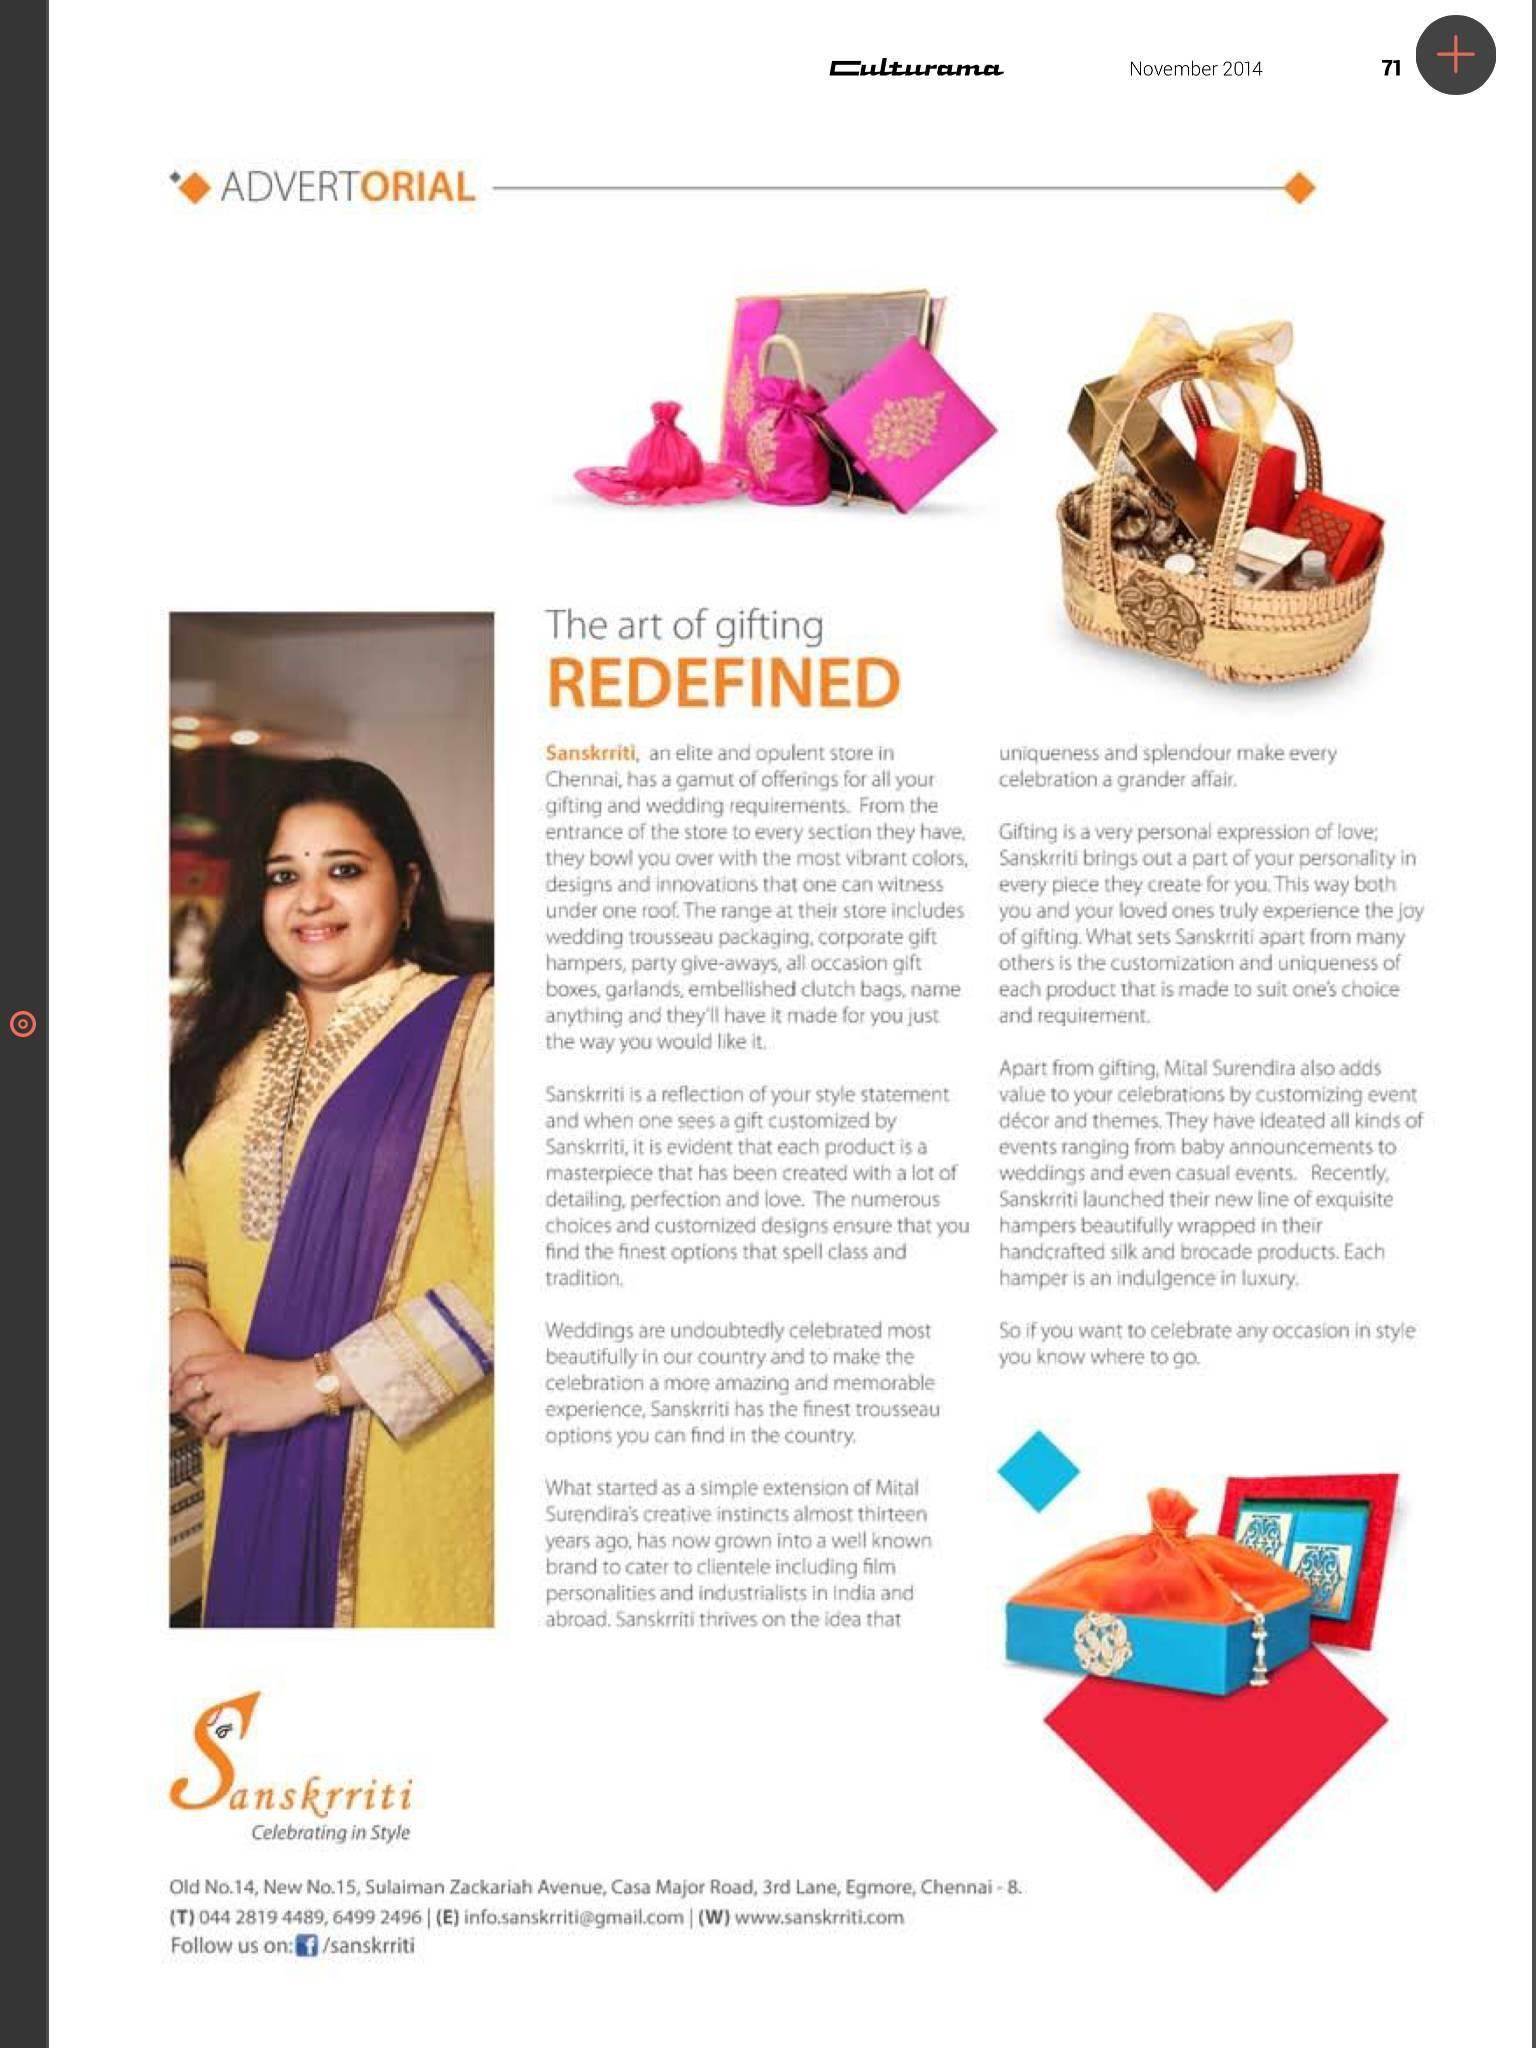 Inclusivity and encouragement by training can change the view on gender differences- Mital Surendira, Brand Owner, Sanskrriti Celebrating in Style.